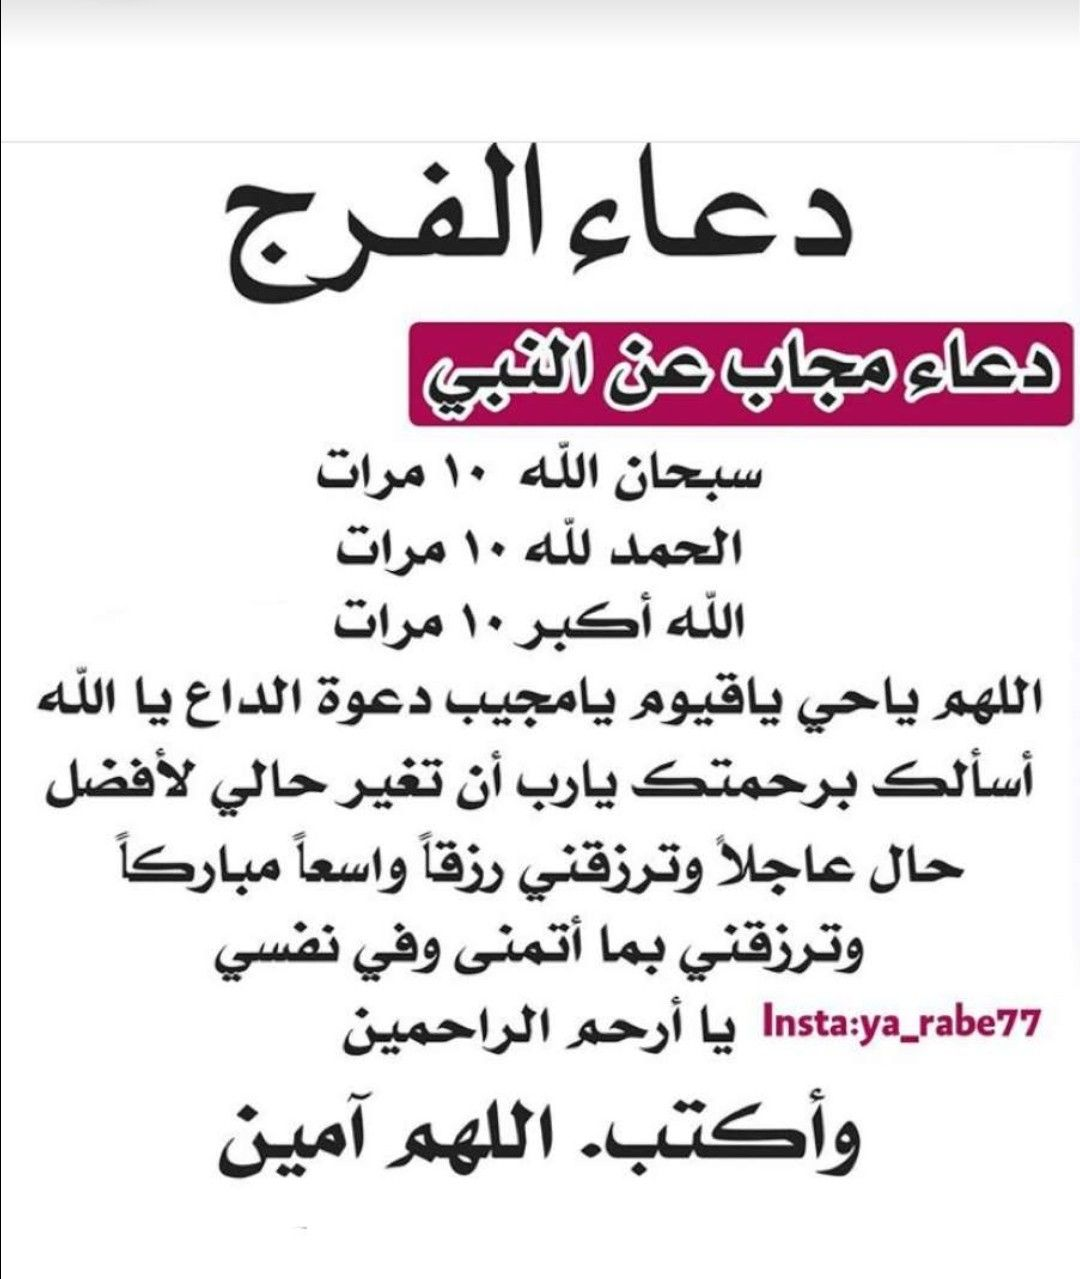 Pin By Nadine Odette On ركن الأدعية Islamic Inspirational Quotes Islamic Quotes Islamic Phrases